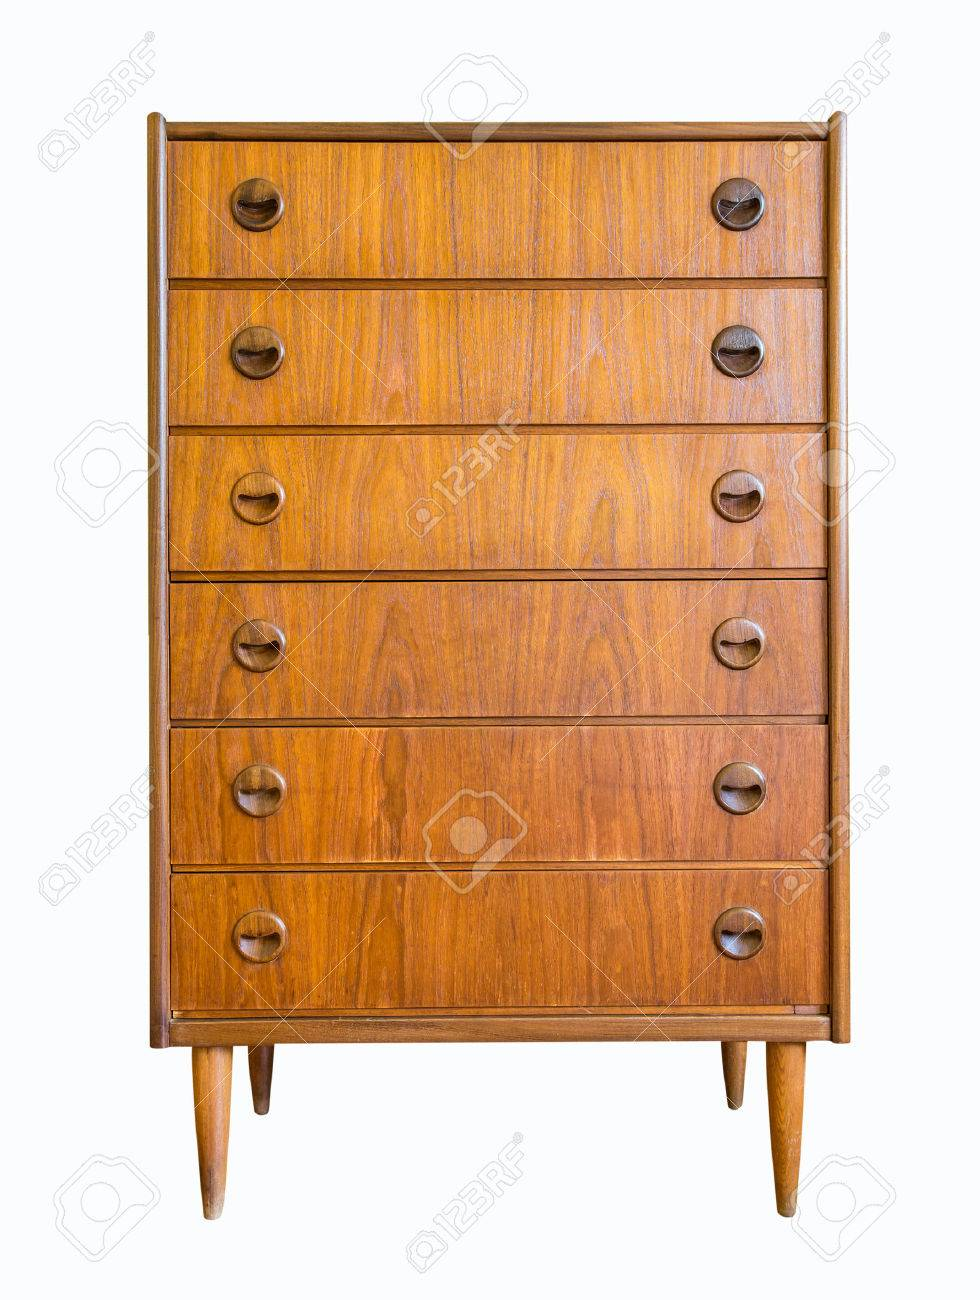 Chest of drawers isolate on white background Stock Photo - 41550273